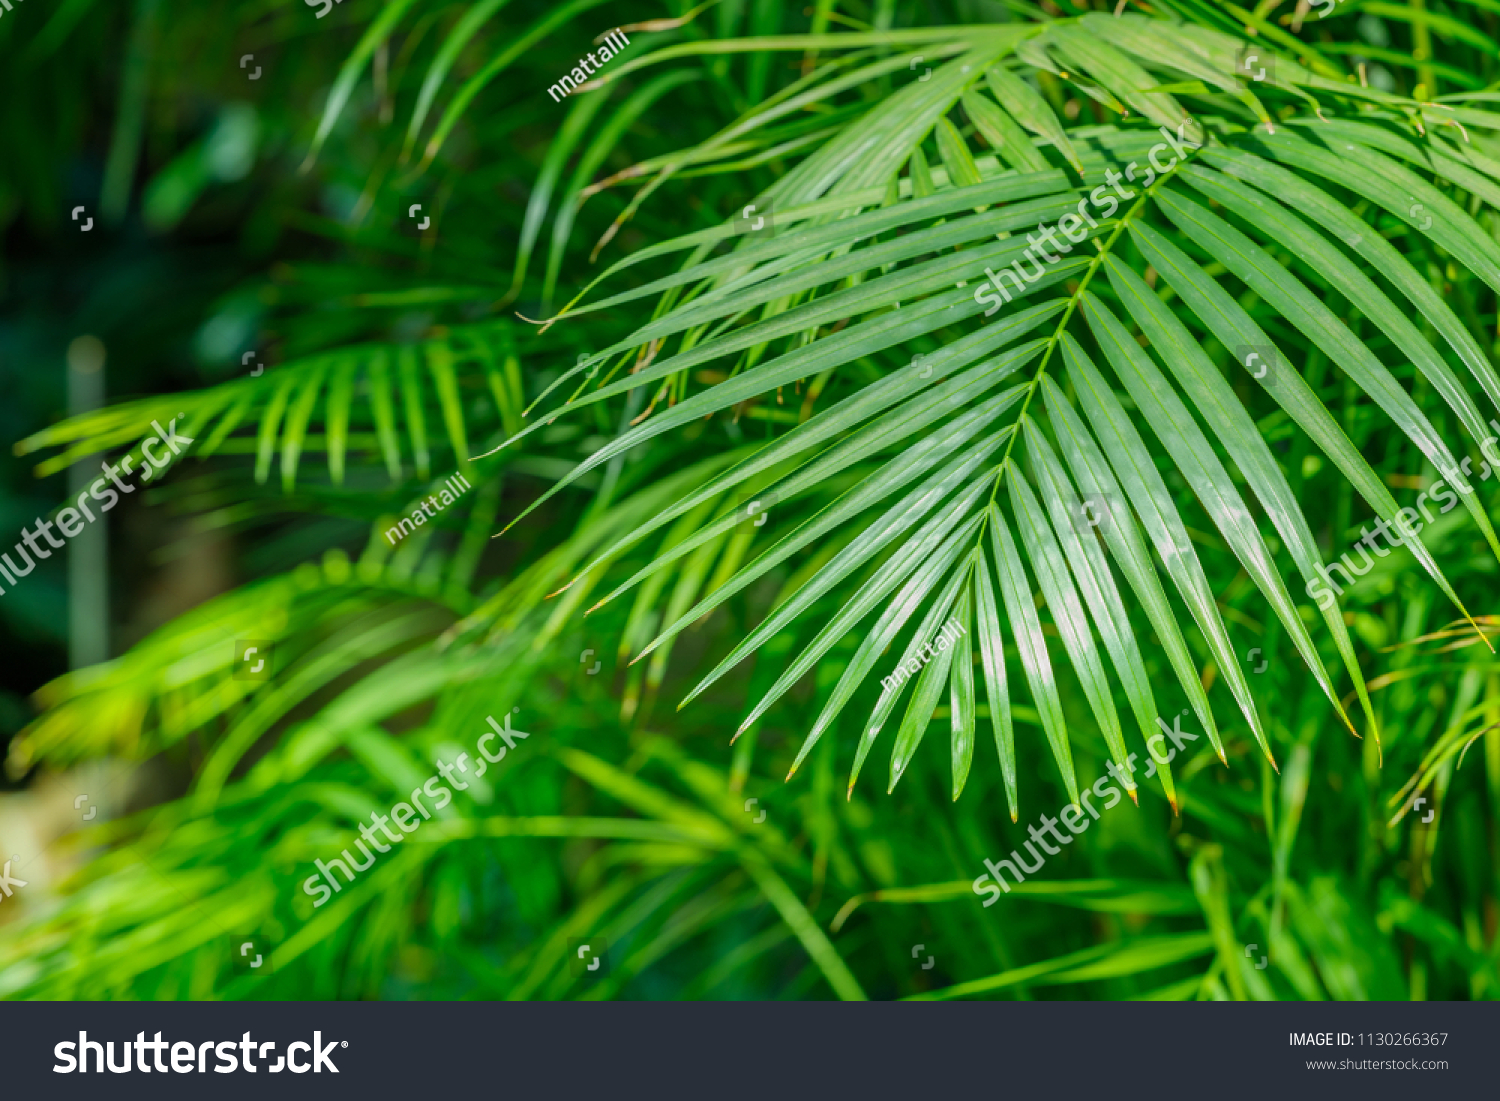 Butterfly Palm Madagascar Palm Areca Palm Chrysalidocarpus Dypsis Lutescens Plant Known Golden Cane Stock Photo Edit Now